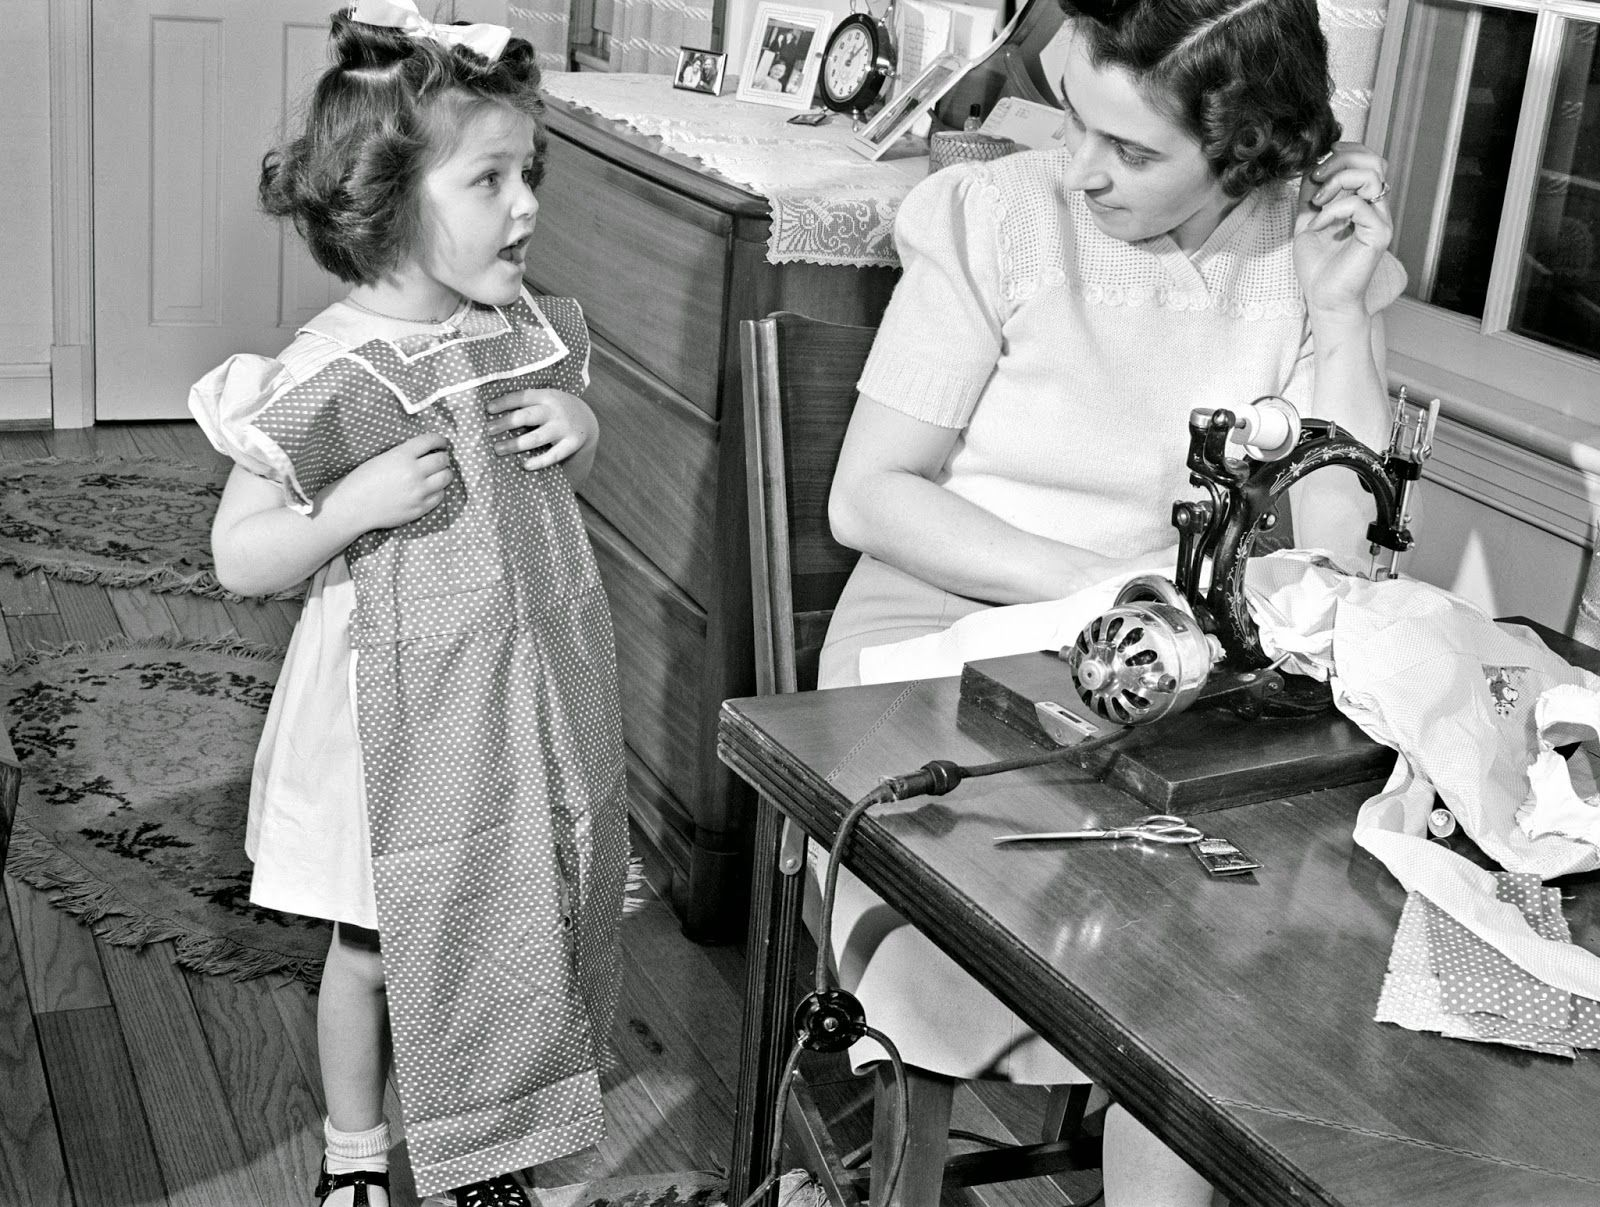 Attractive playsuits for daughter can be made from that old housedress, the one with the splitting seams, and Junior's first long pants (no cuffs) can emerge from father's old overcoat. February 1942